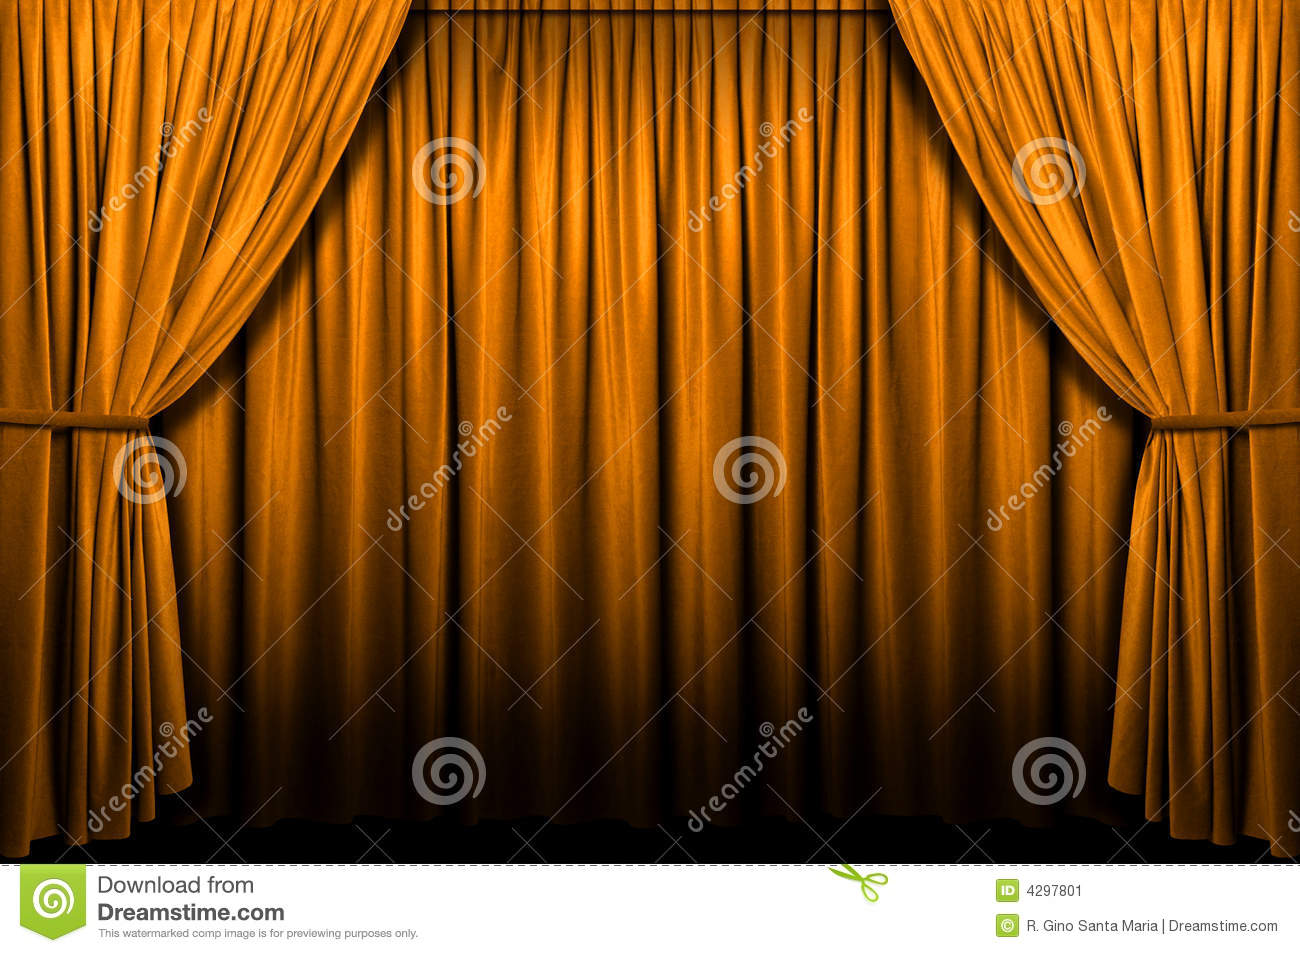 Cheap black stage curtains - Gold Stage Curtains Gold Stage Curtain Gold Stage Curtain